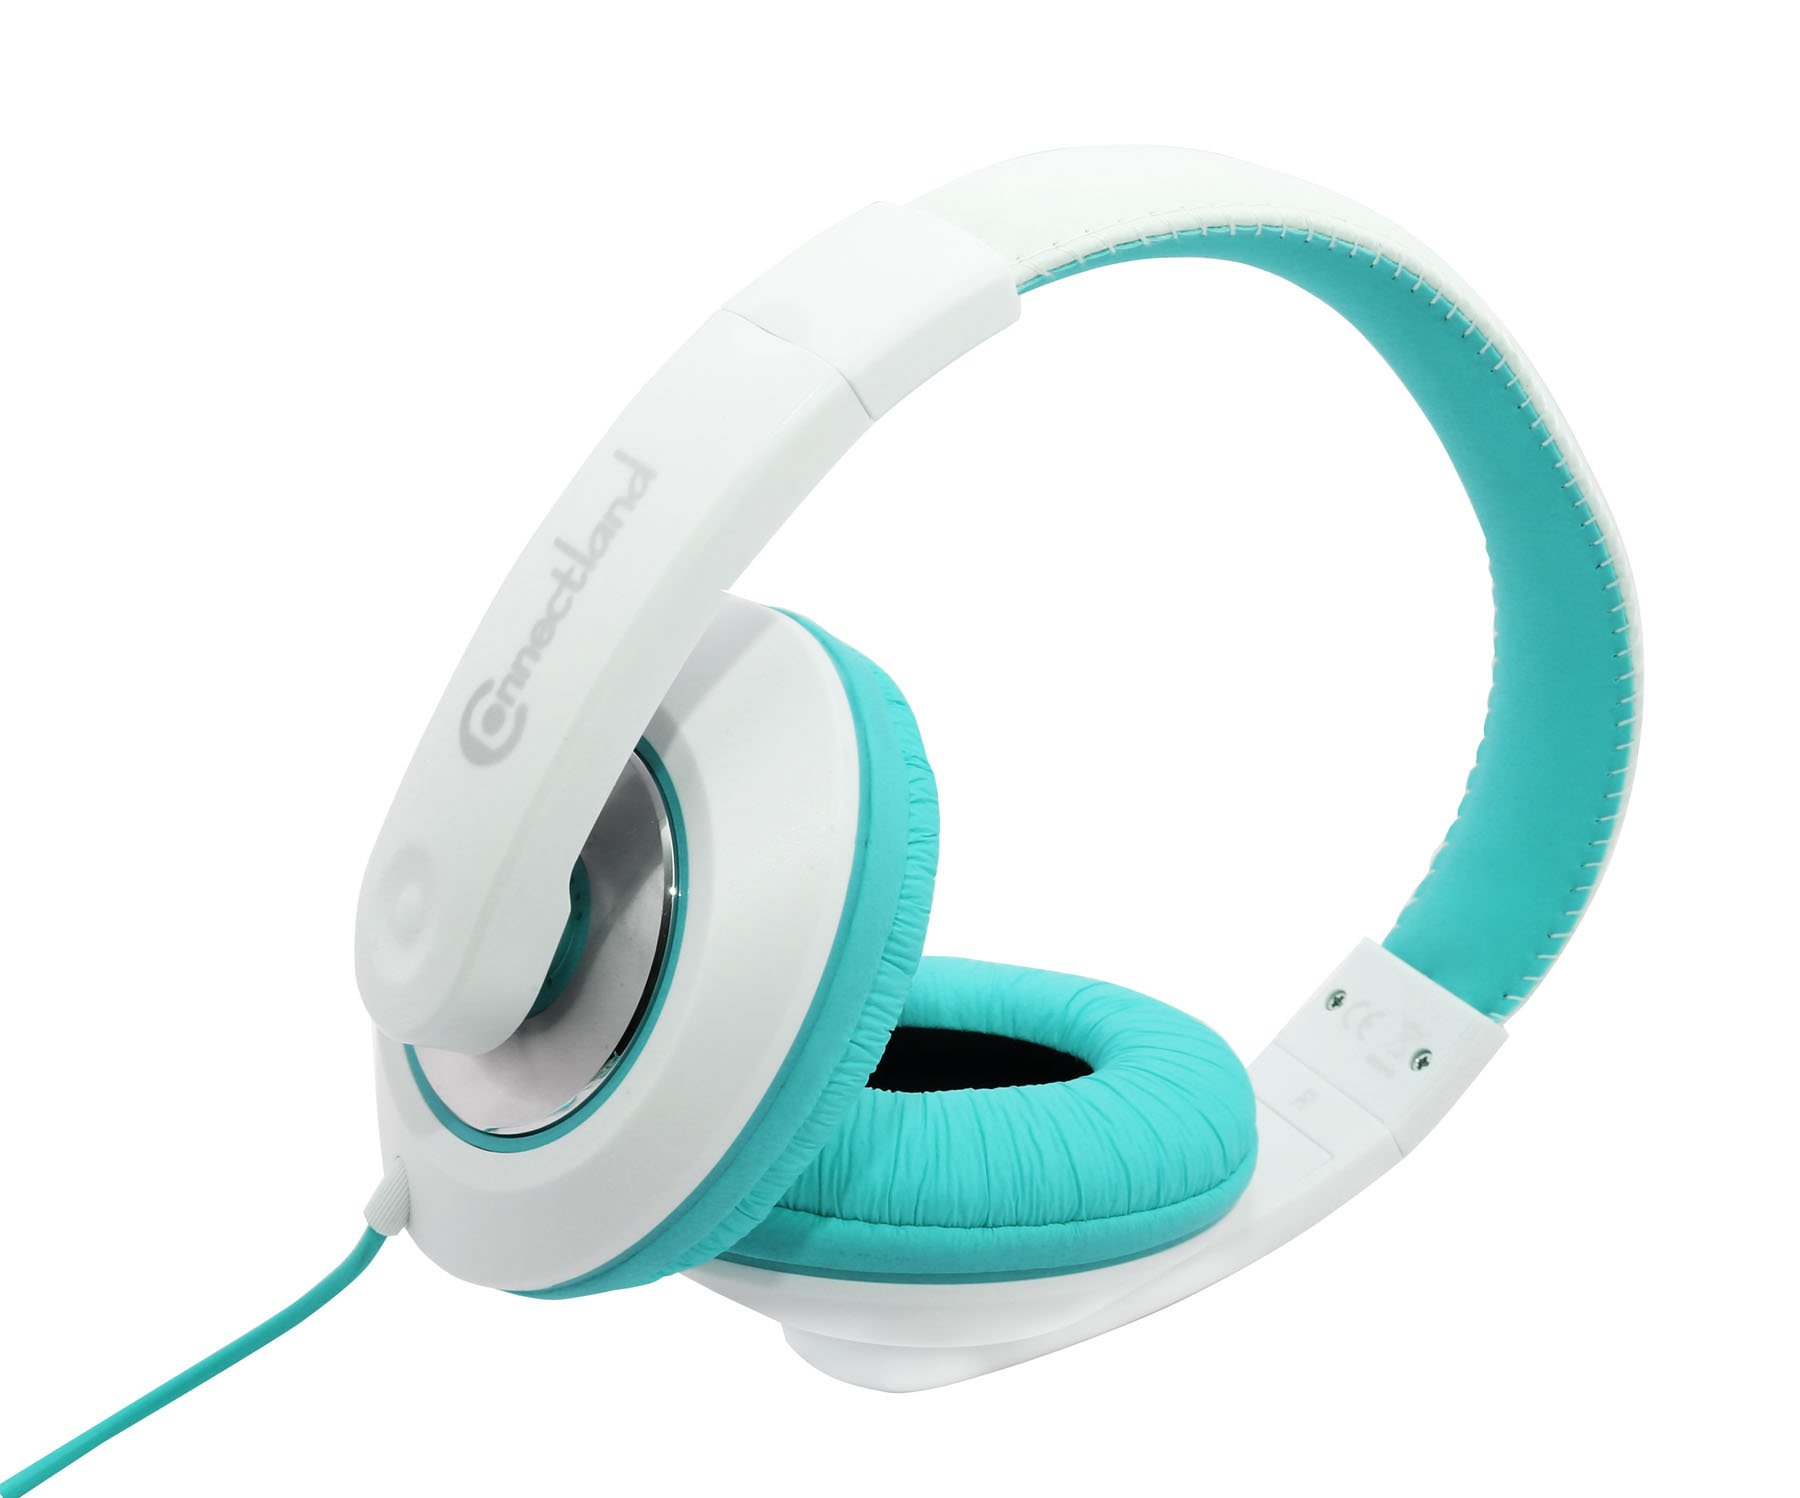 Connectland Stereo Wired Headphone & Microphone Lightweight 40mm Speaker Music Gaming Stylish Teal CL-AUD63035 by Connectland (Image #3)